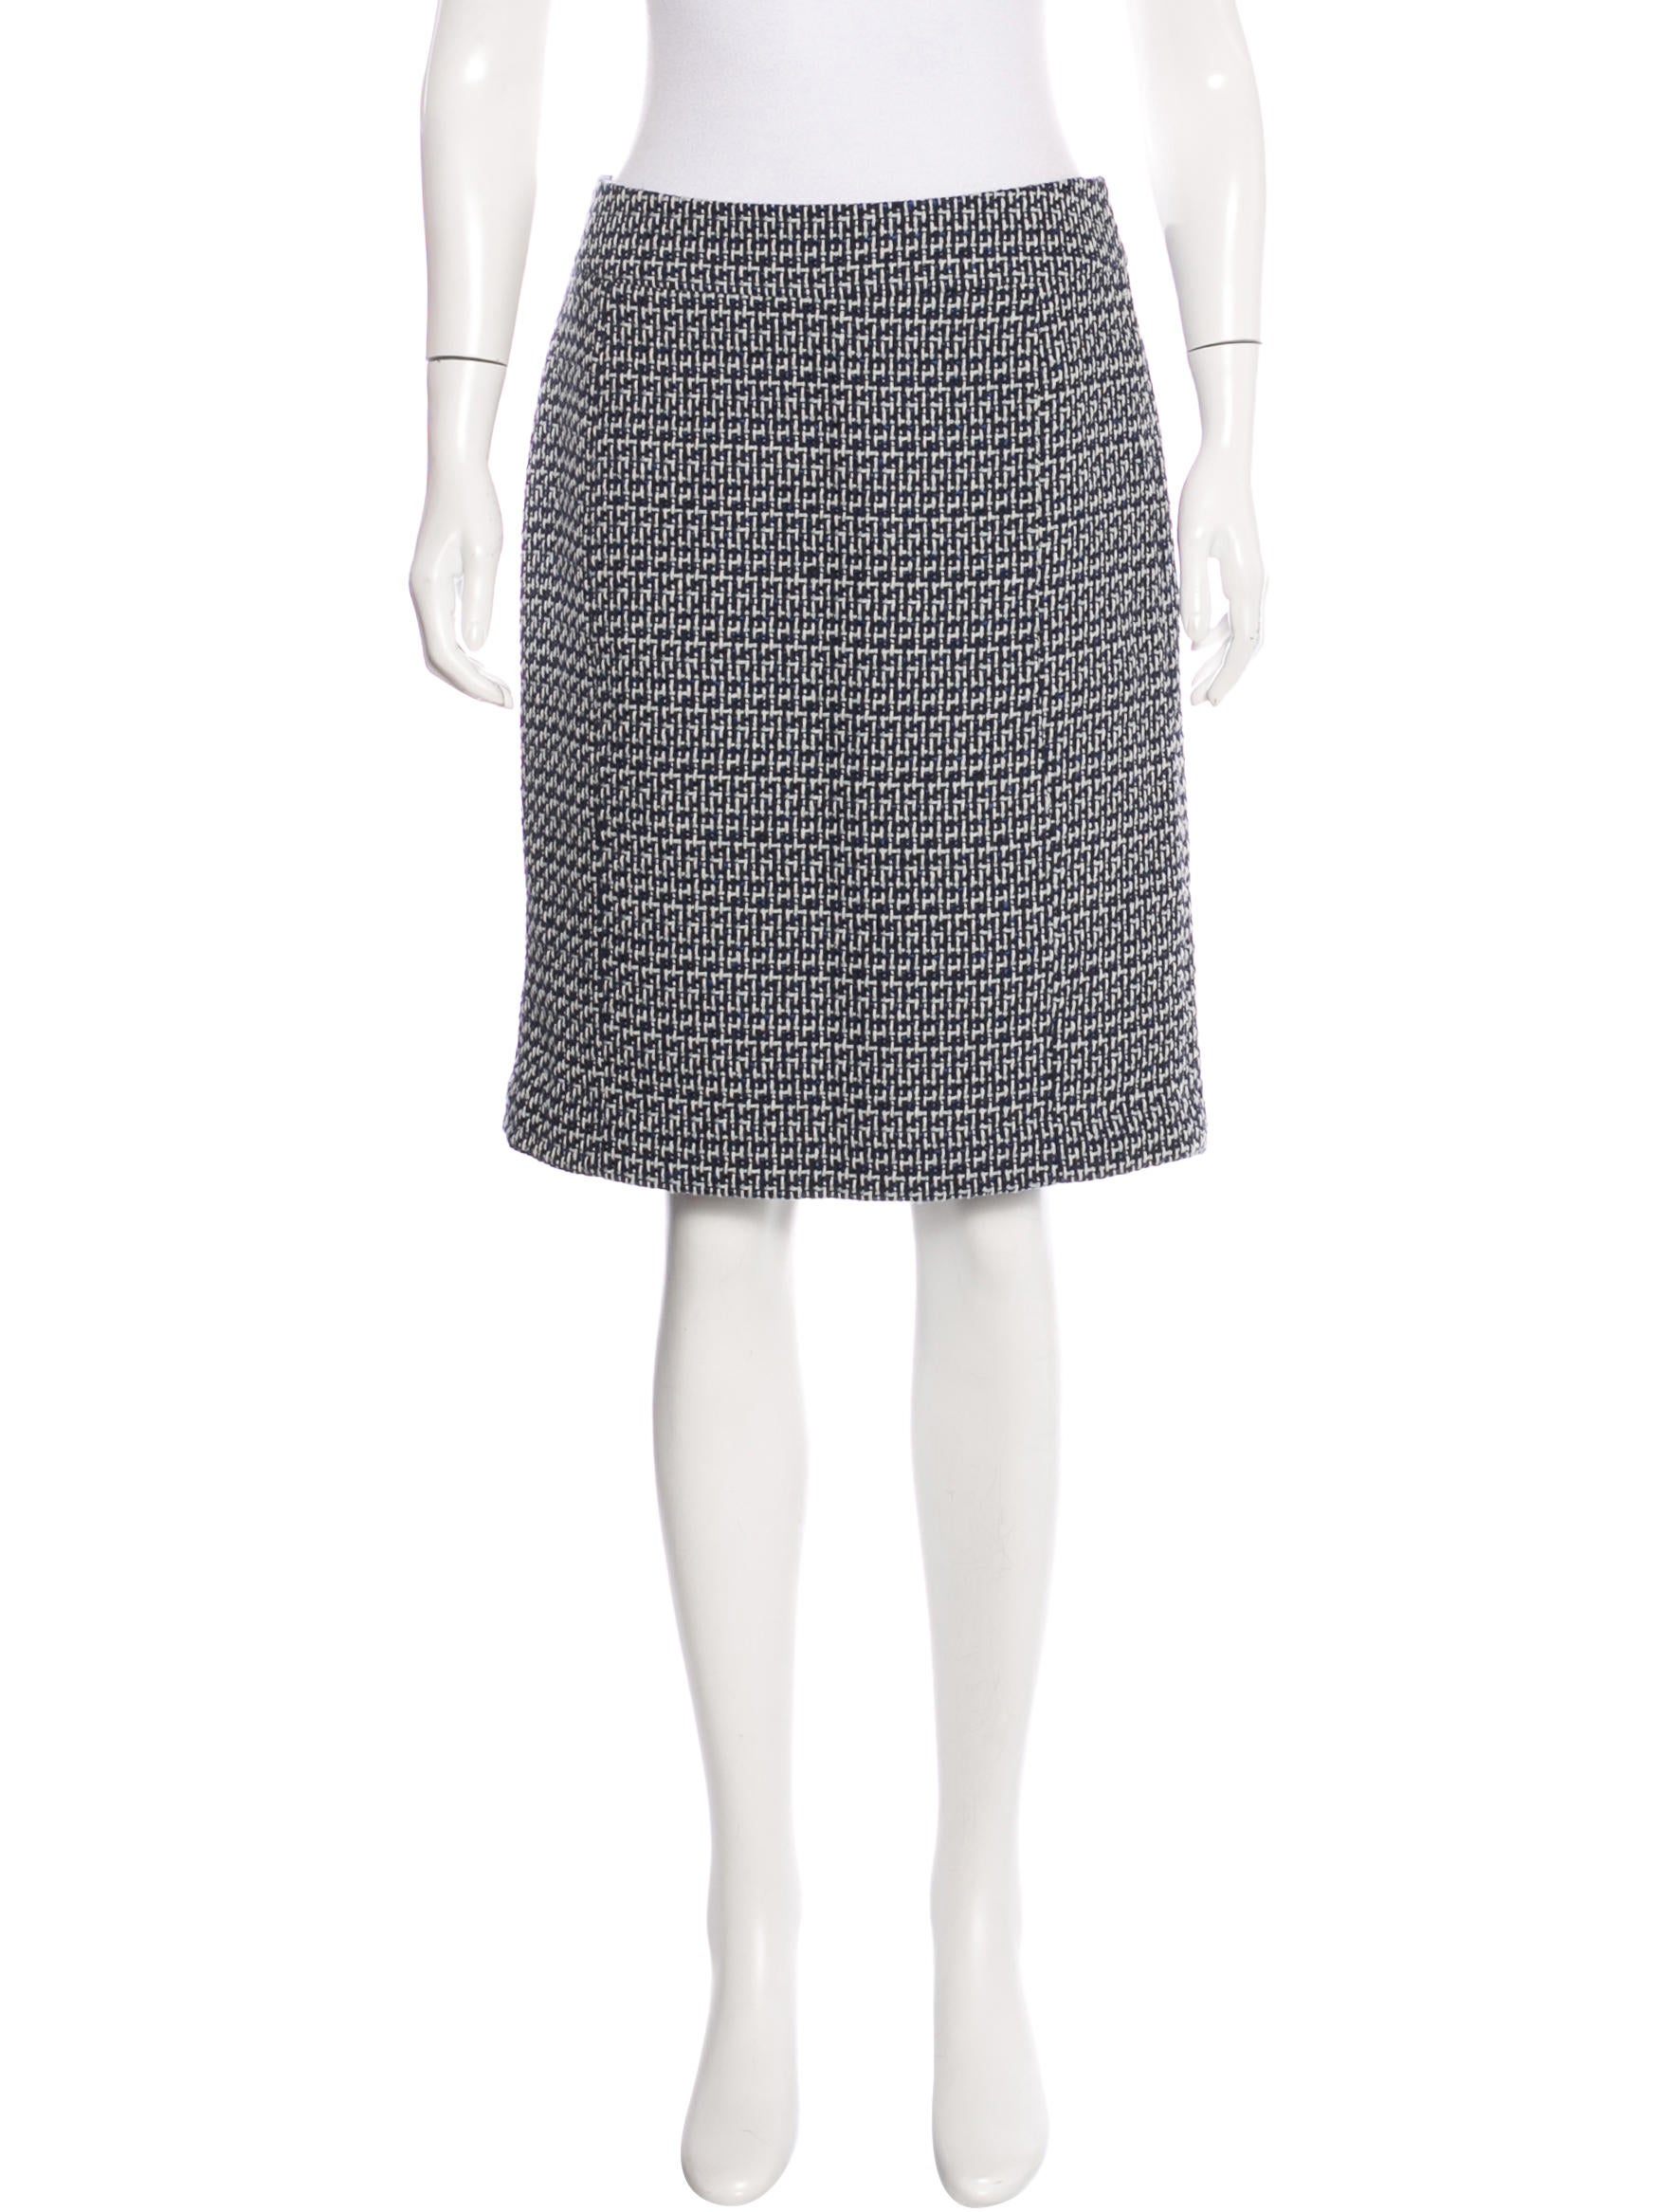 burch patterned knee length skirt clothing